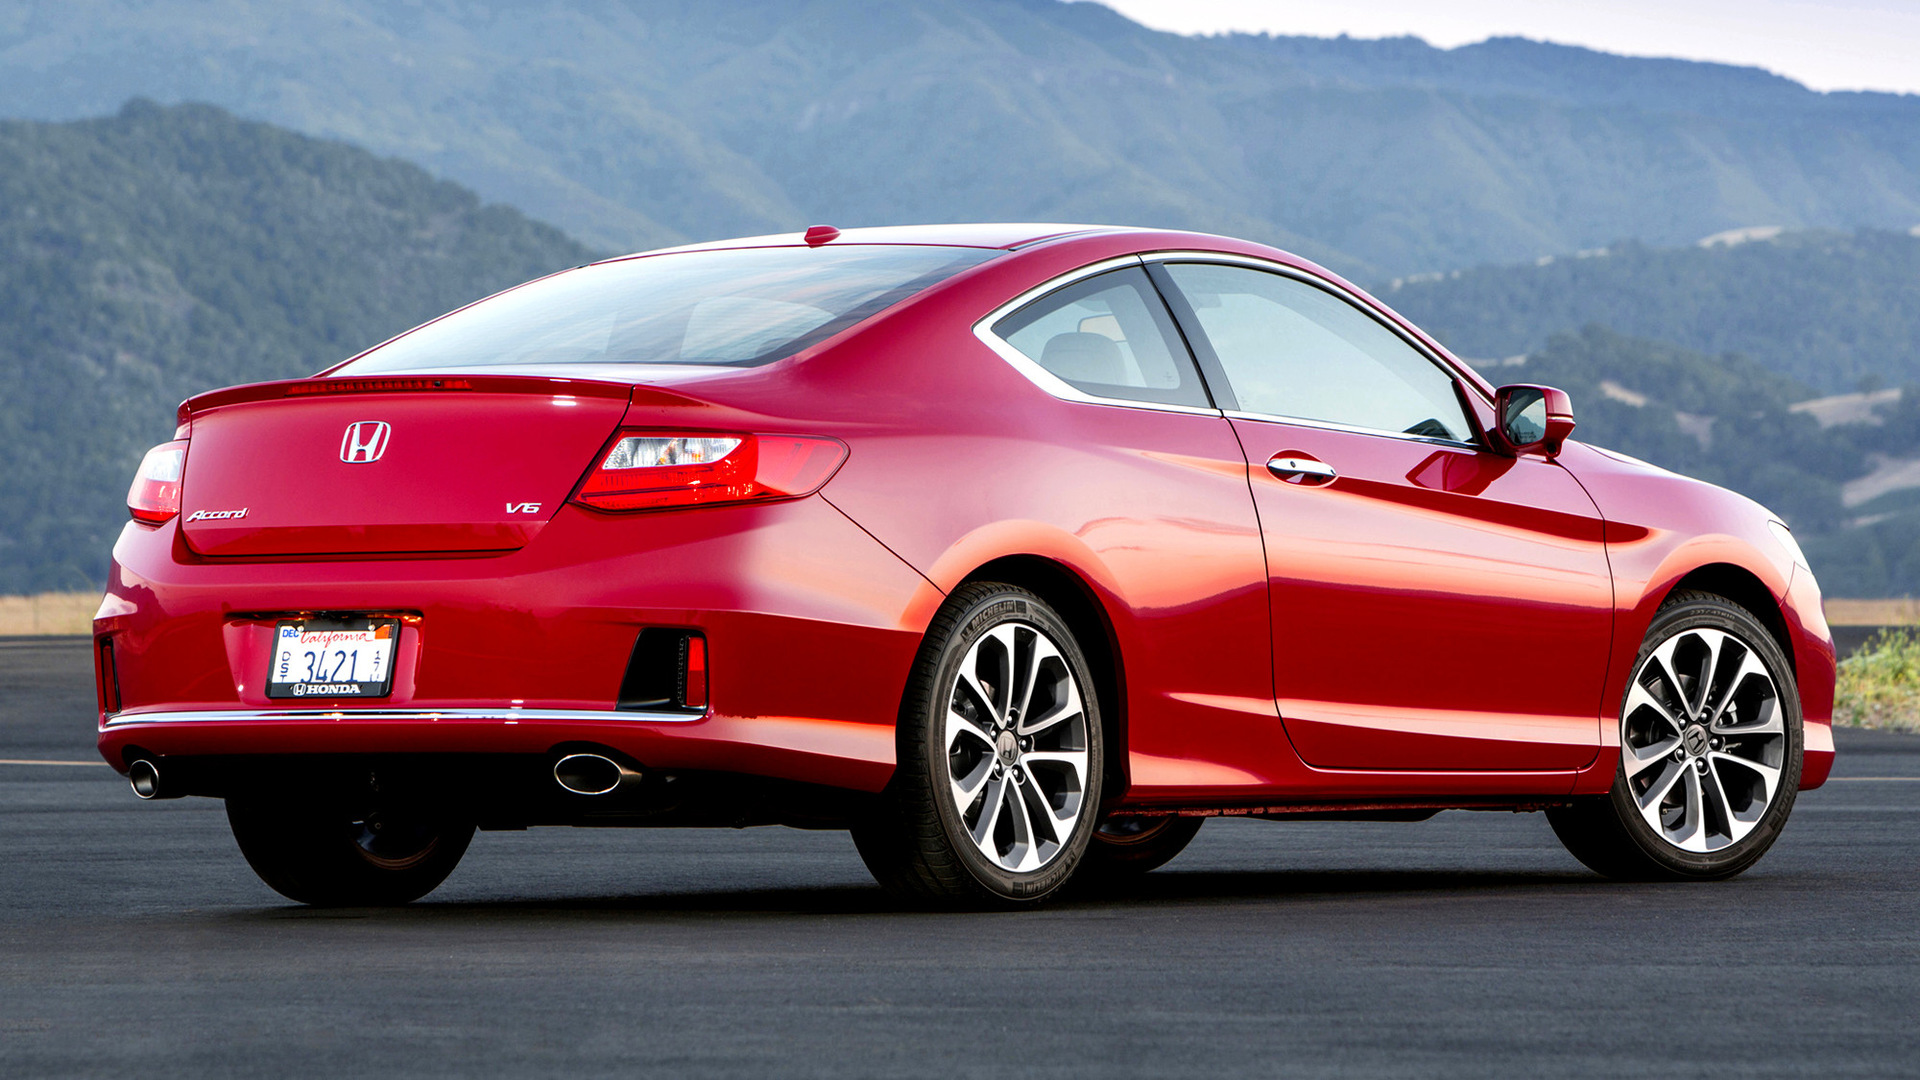 Honda Accord Ex L V6 Coupe 2012 Wallpapers And Hd Images